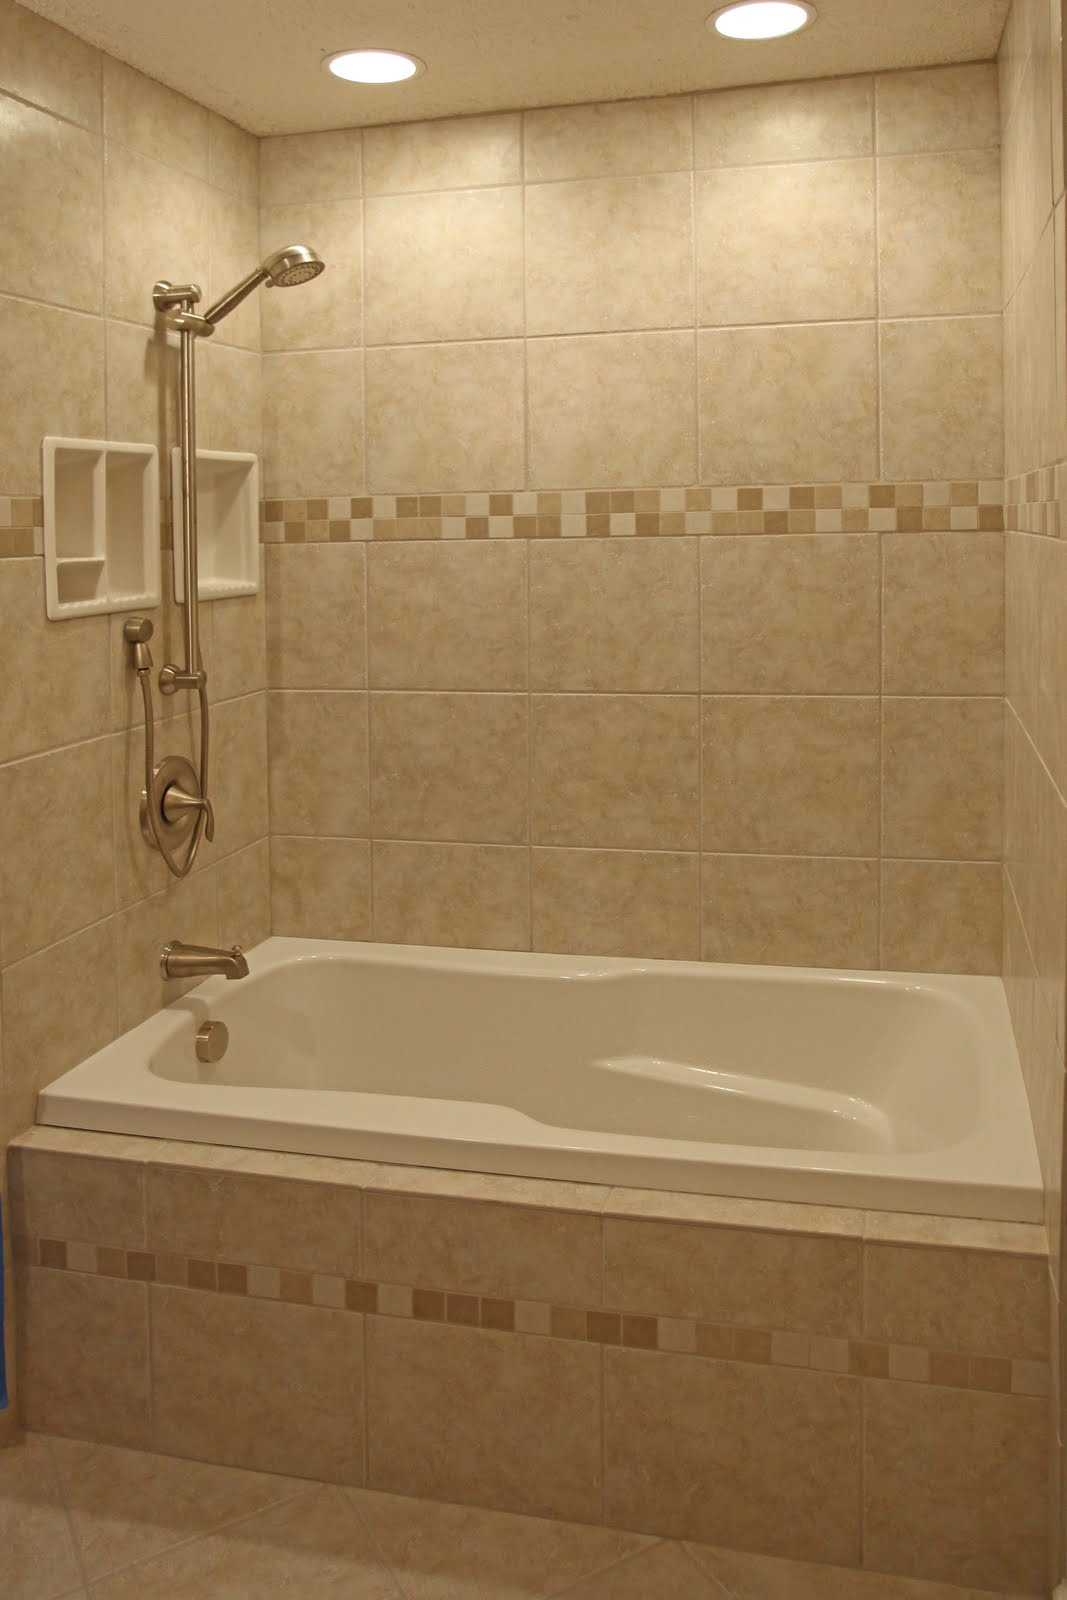 Bathroom remodeling design ideas tile shower niches Small bathroom remodel tile